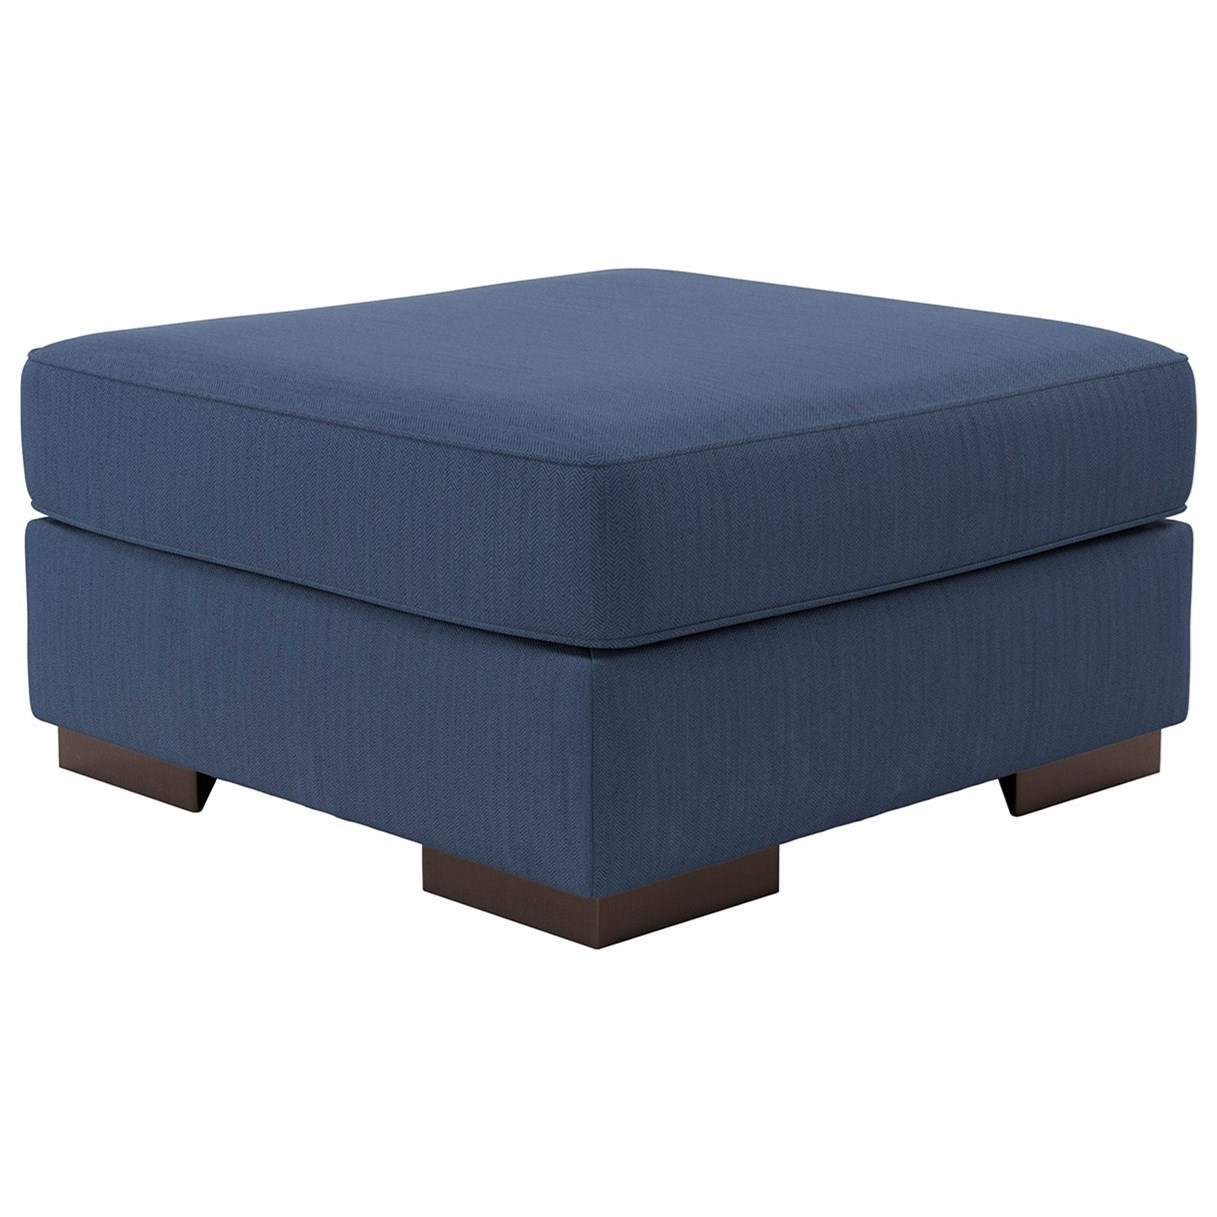 Ashley Furniture Bantry Nuvella Oversized Accent Ottoman - Item Number: 1850608